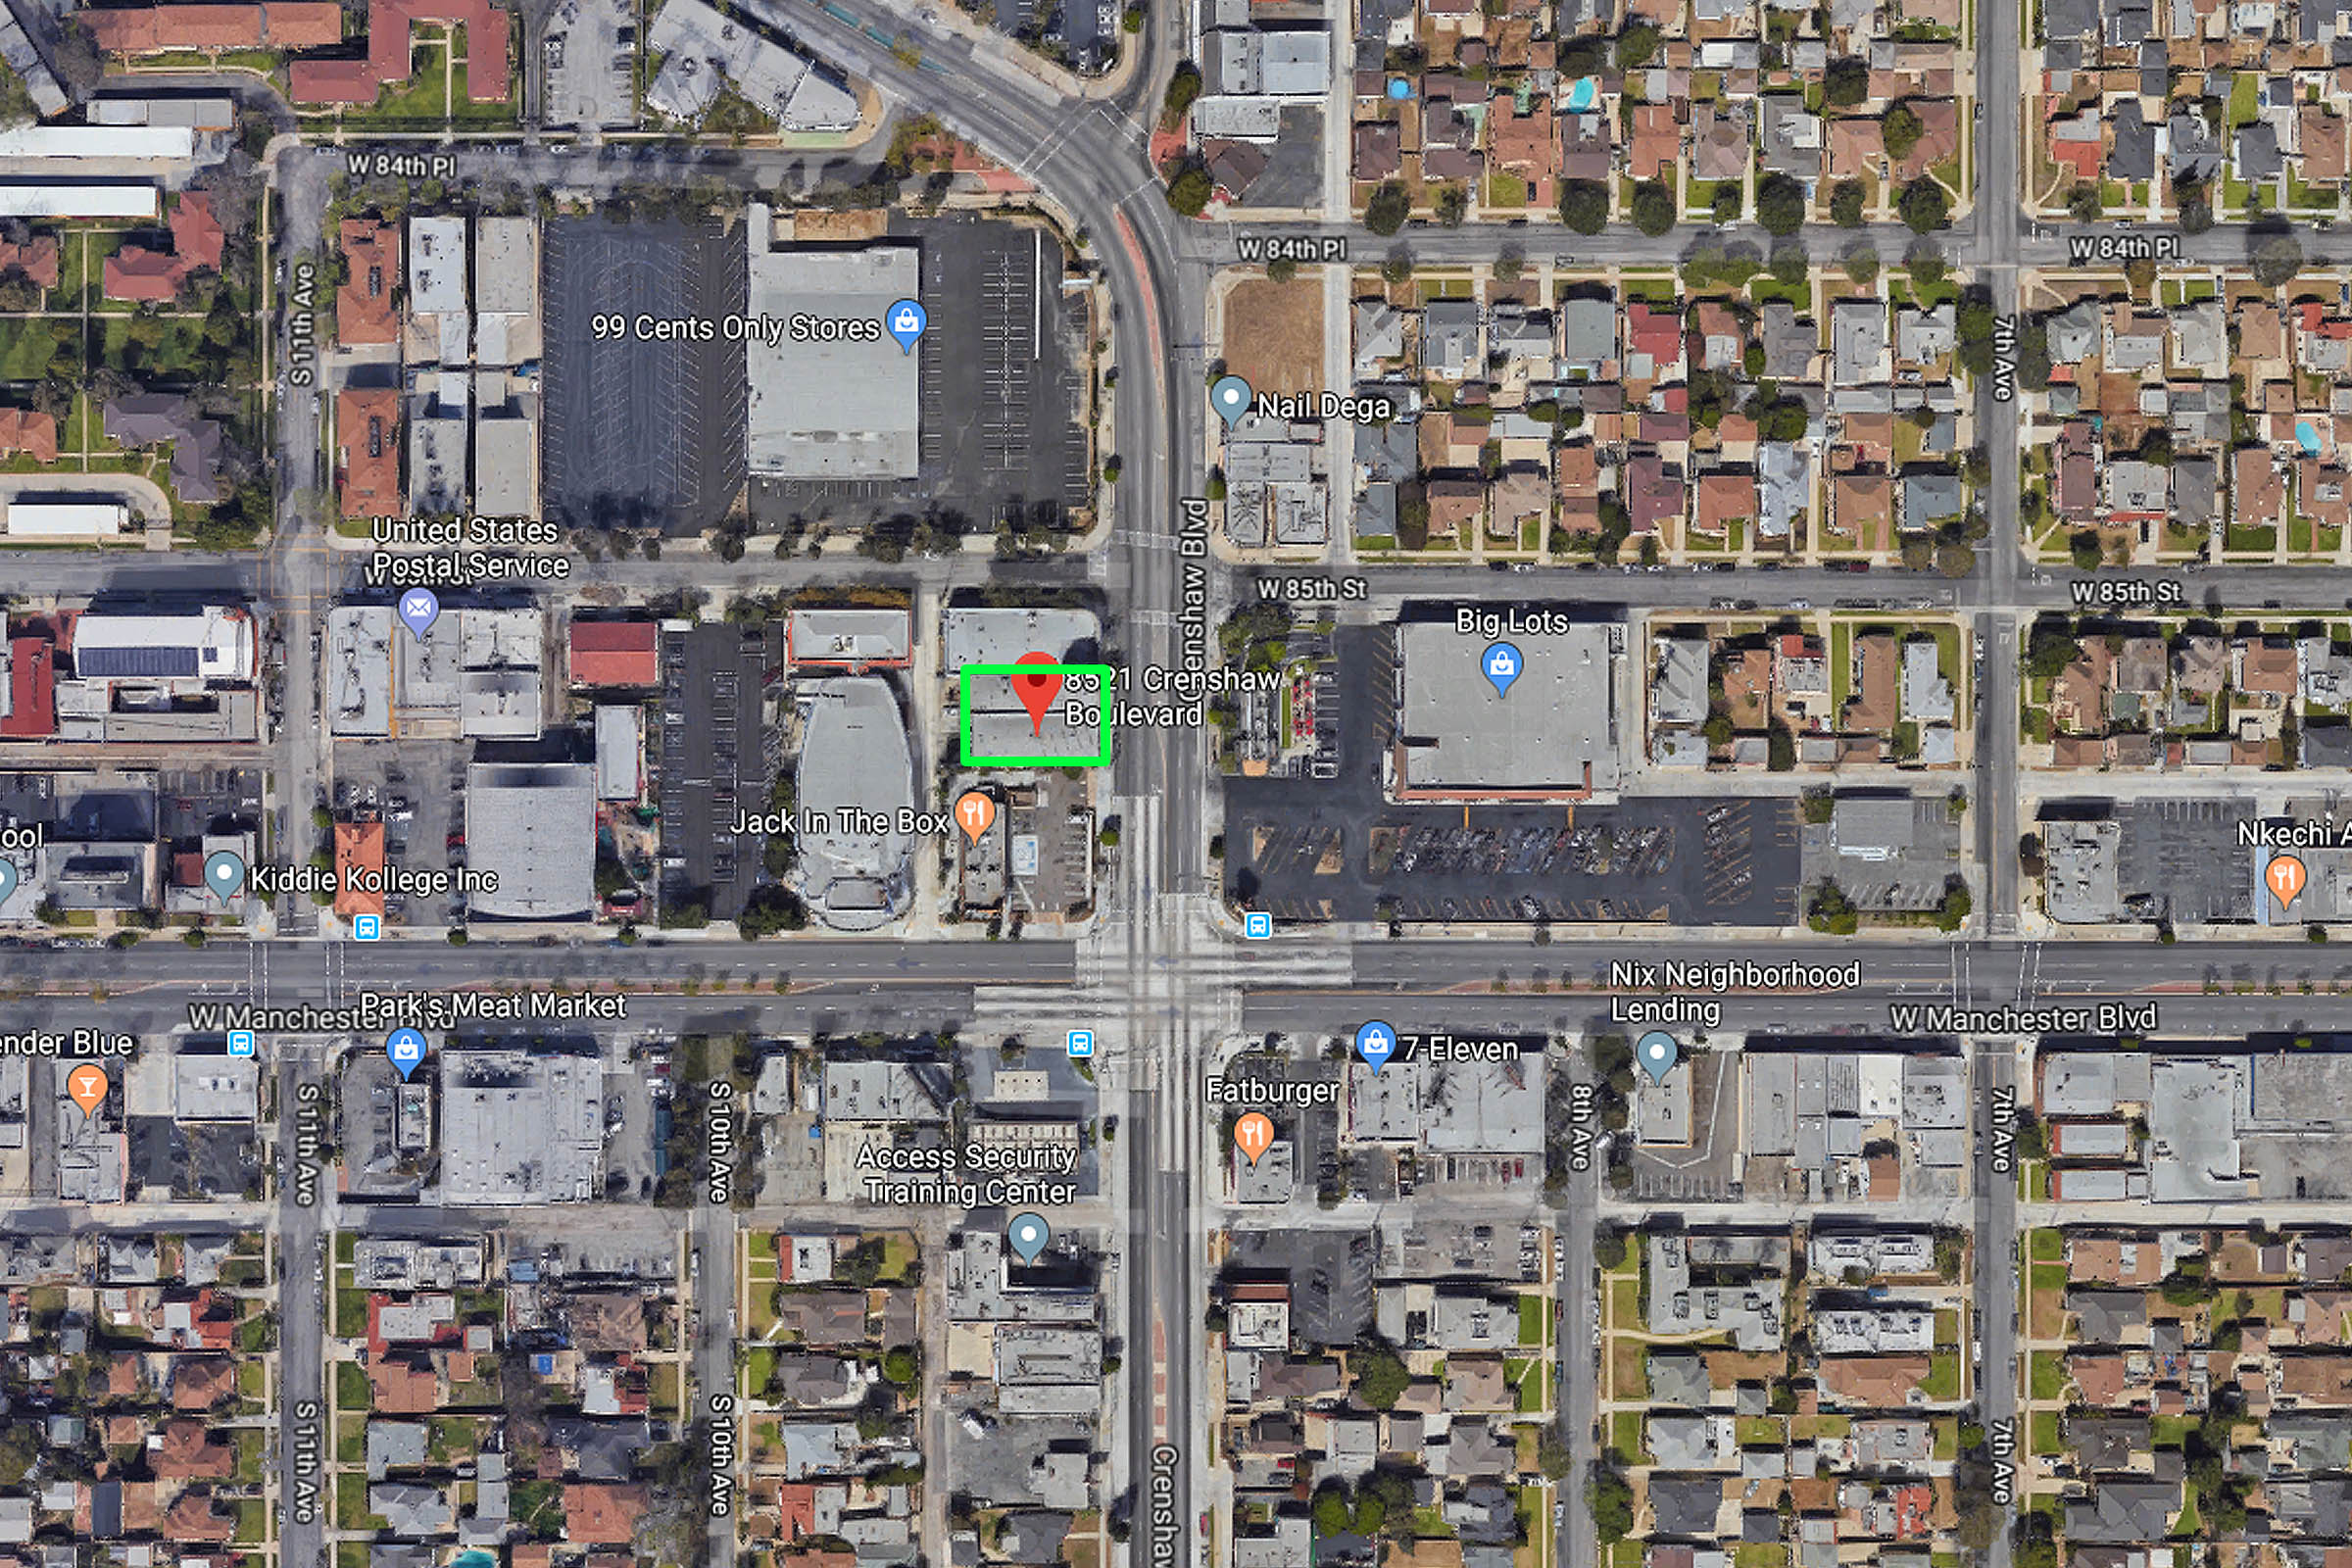 8521 Crenshaw Blvd, Inglewood | For LEASE